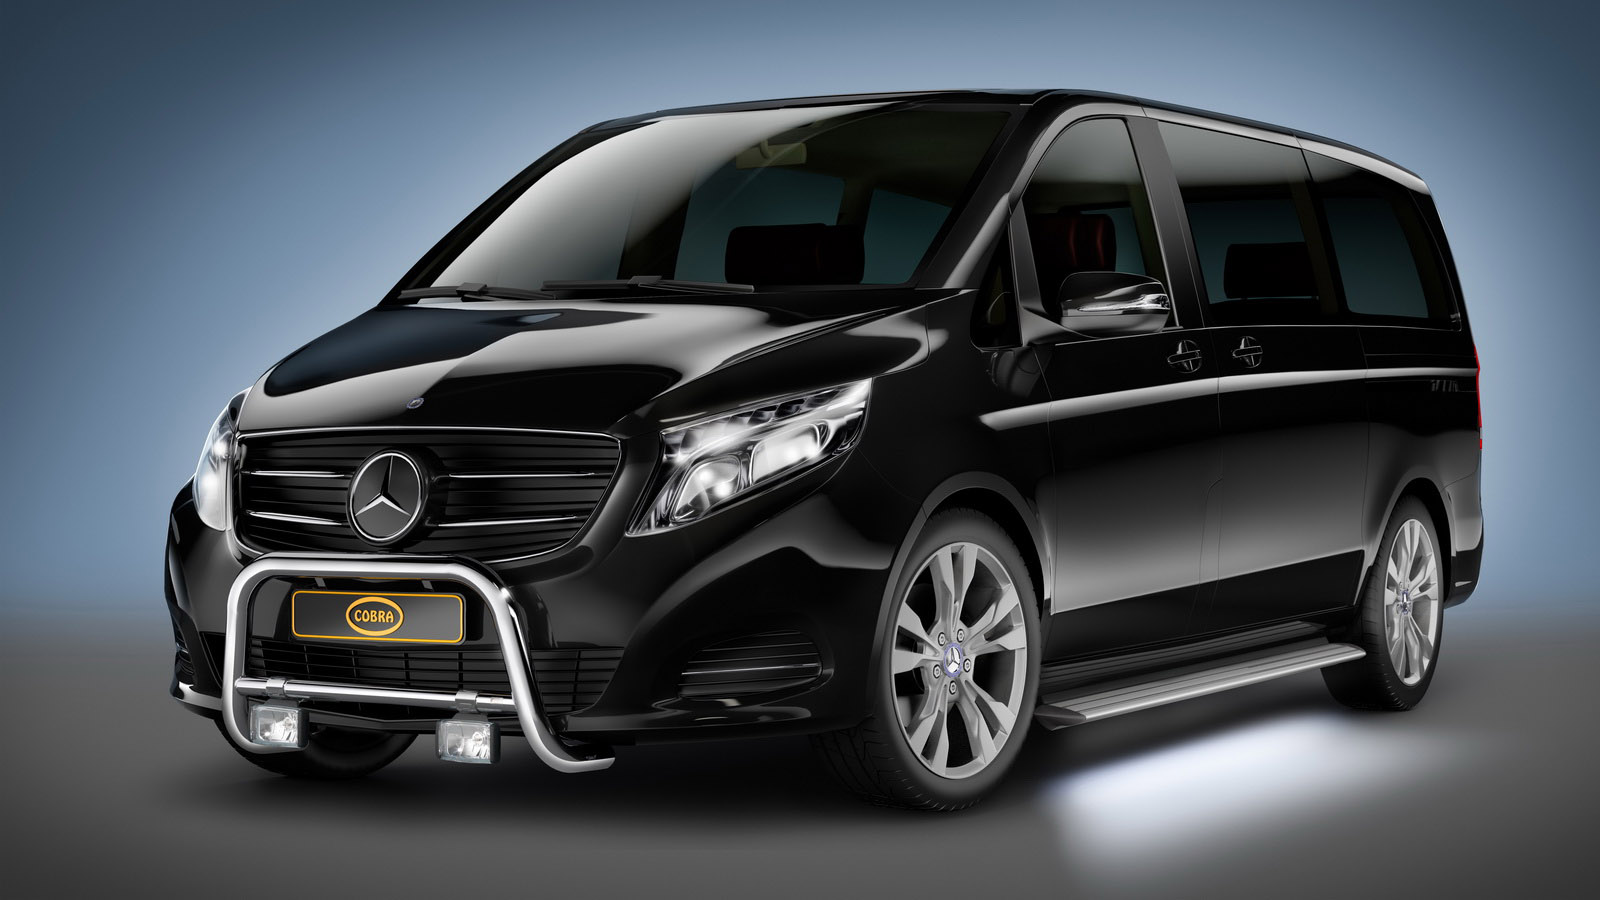 Cobra Accessories Adorn The New Mercedes V Class And Vito Vans